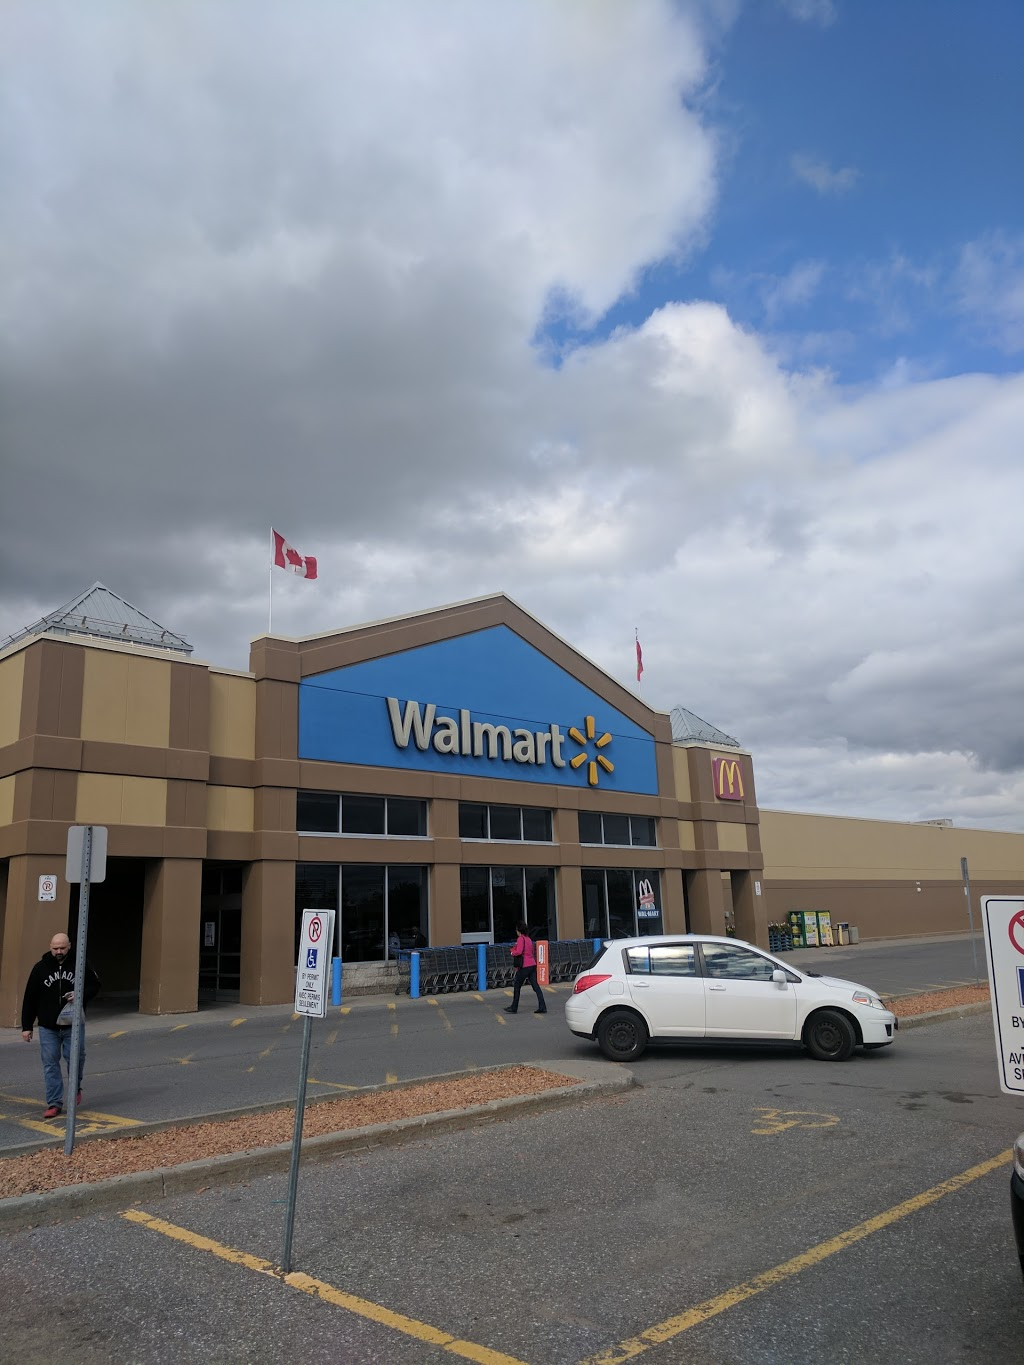 Walmart Supercentre | clothing store | 73 Strathy Rd, Cobourg, ON K9A 5W8, Canada | 9053731239 OR +1 905-373-1239